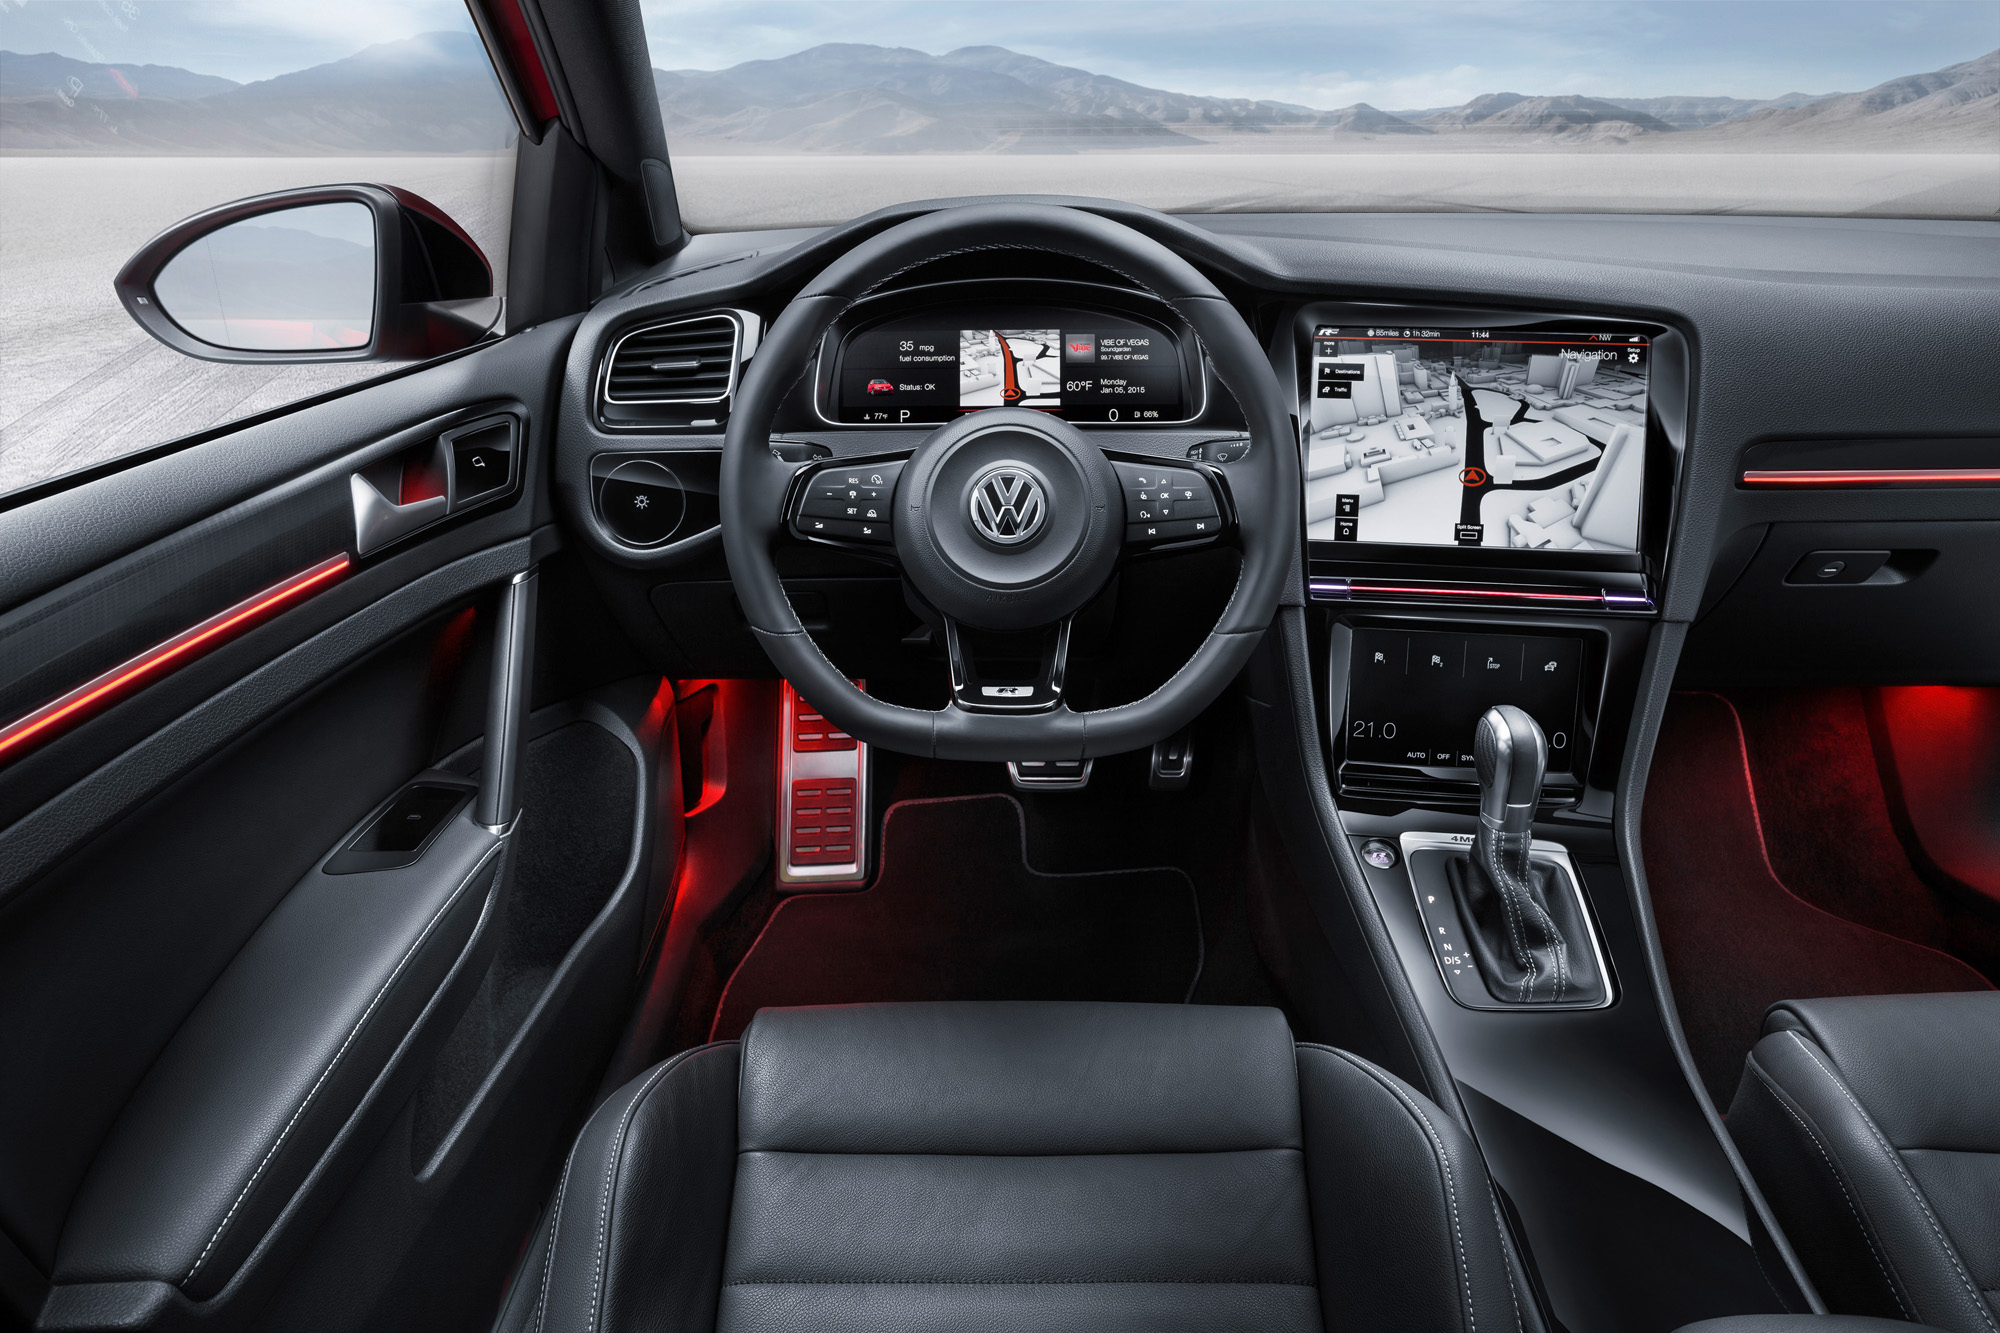 VW Golf 7 R Touch Display Mittelkonsole